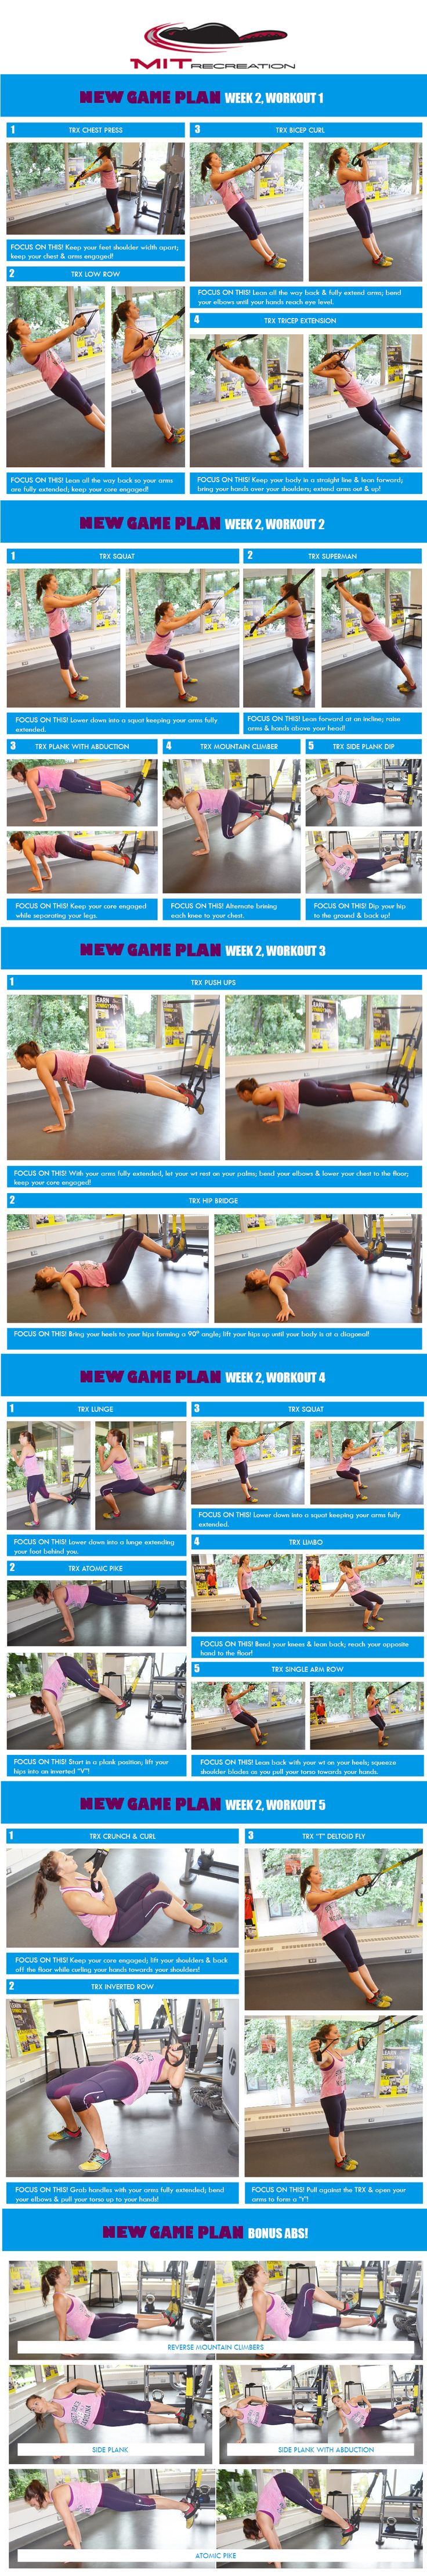 New Game Plan MIT Week 2 - Are you ready for NEW Game Plan week two? These TRX workouts are a sure way to challenge your muscles! - http://www.amazon.co.uk/dp/B00RLH0M6C http://www.amazon.de/dp/B00RLH0M6C